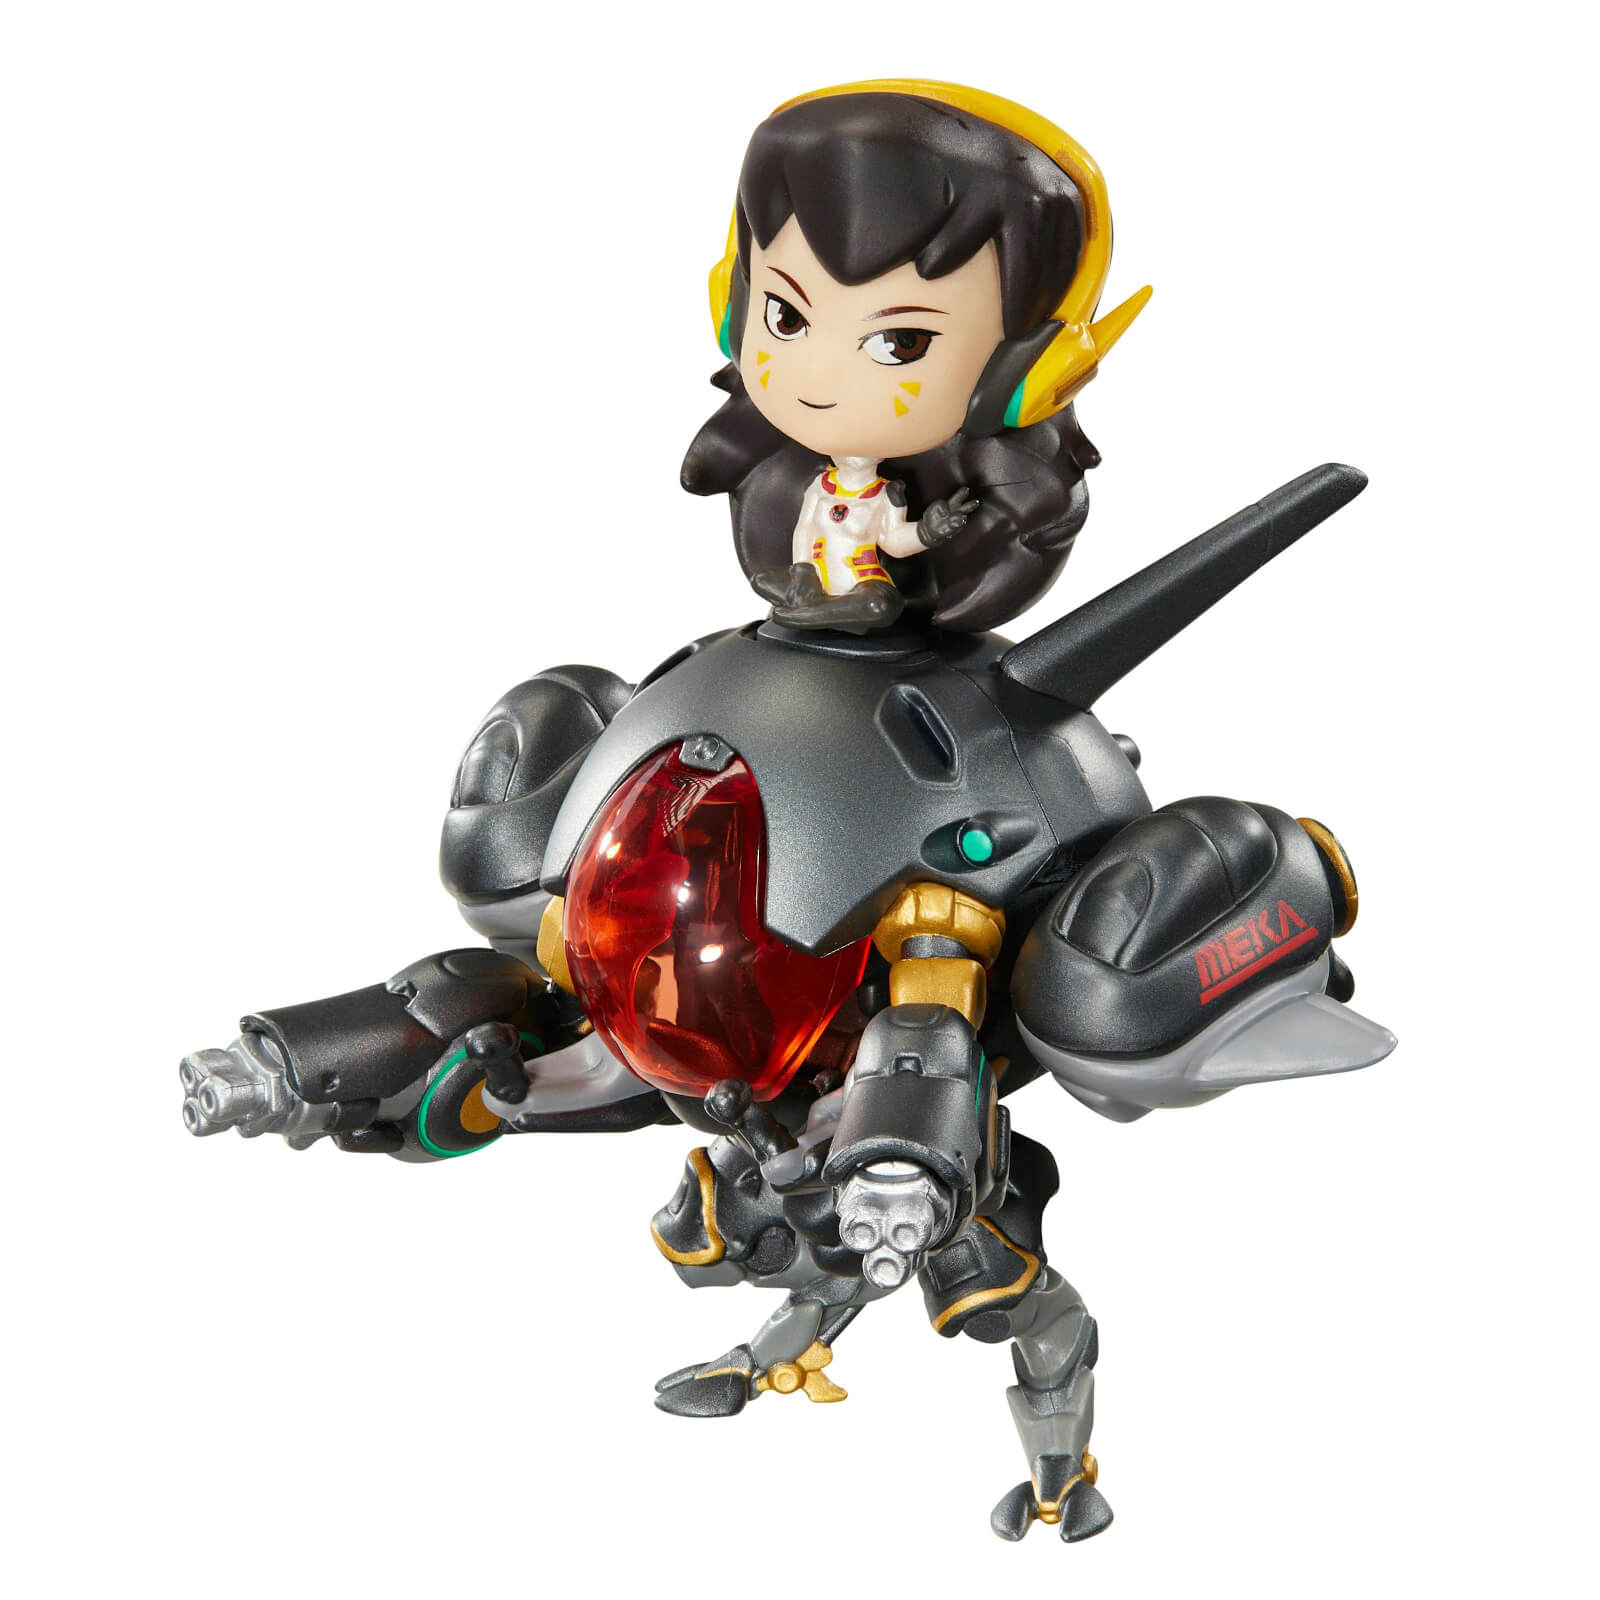 Image of Overwatch Cute But Deadly D.Va & Meka Carbon Edition Figure